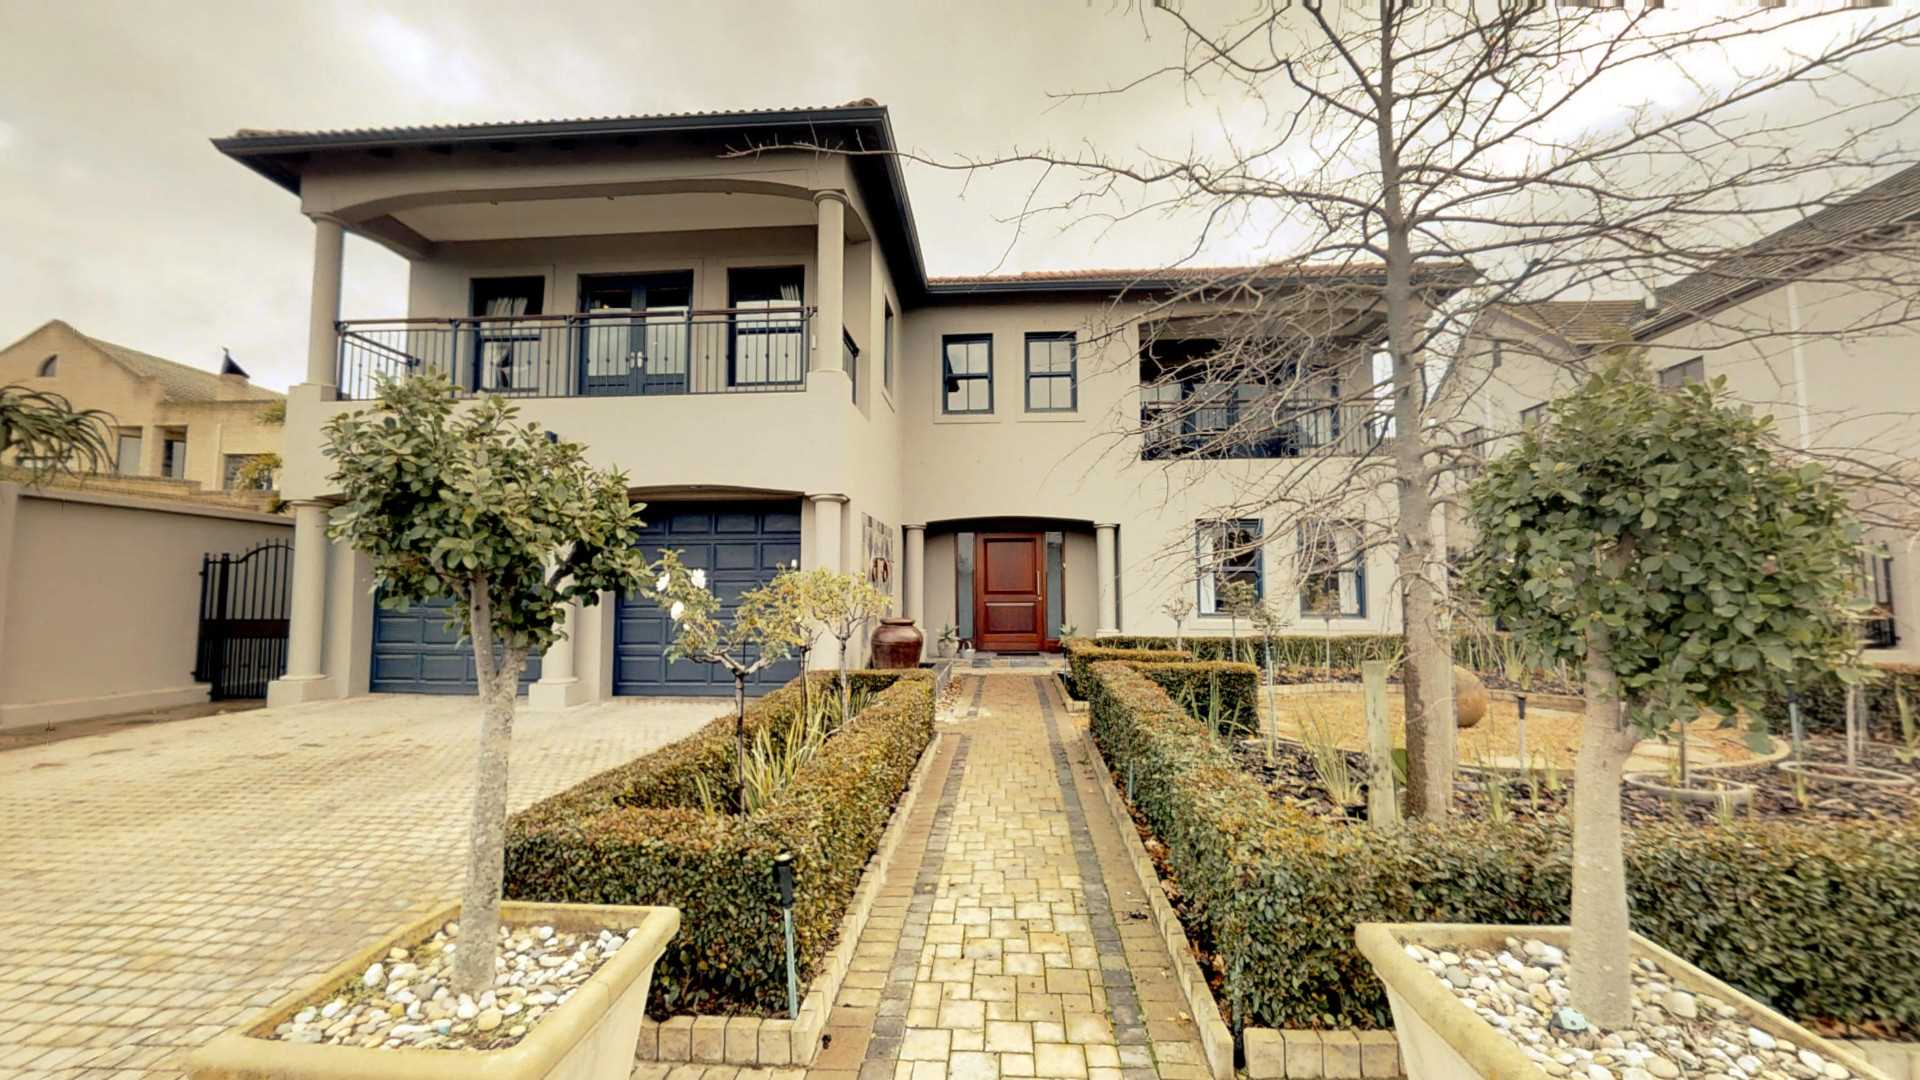 Executive living in a Secure Estate - R 5,250,000